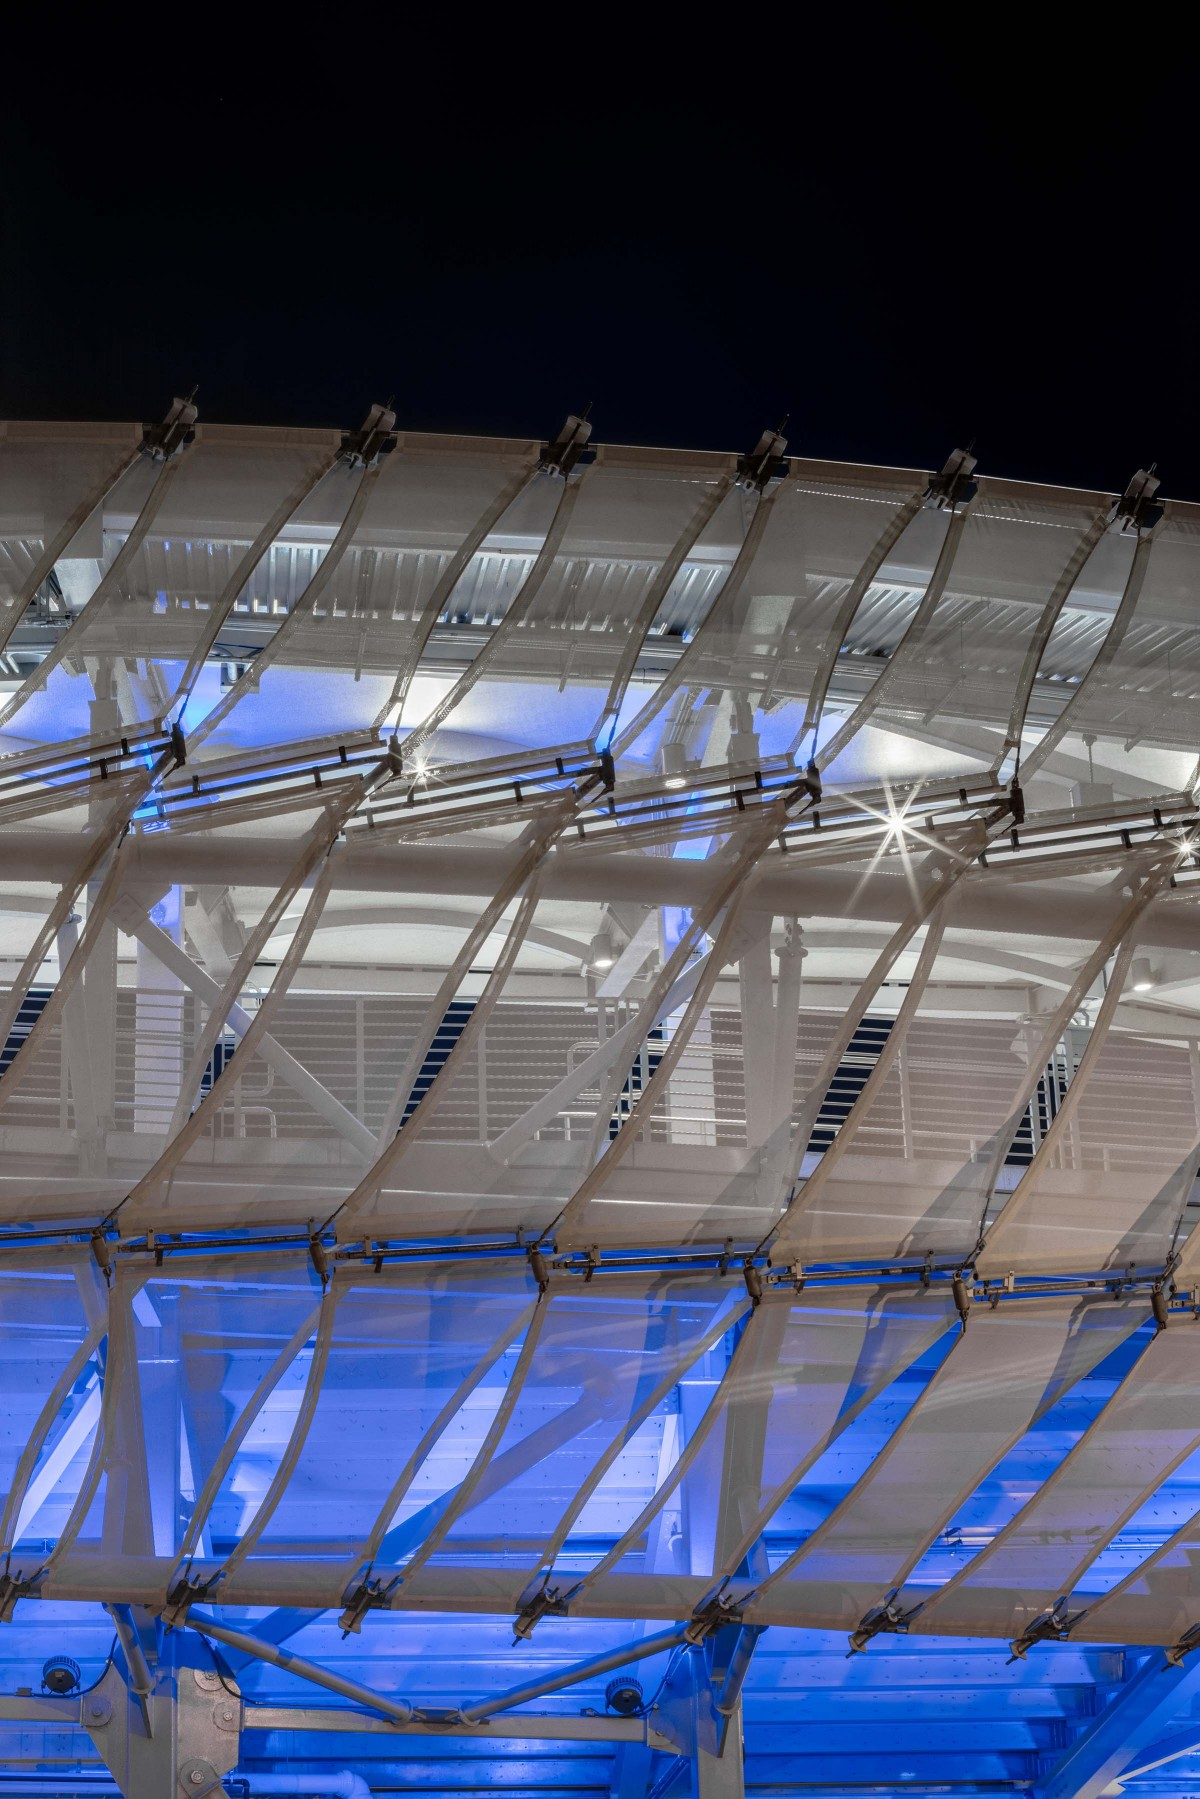 These panel materials play with opacity and translucence, offering glimpses in and out of the stadium. – Rafael Gamo